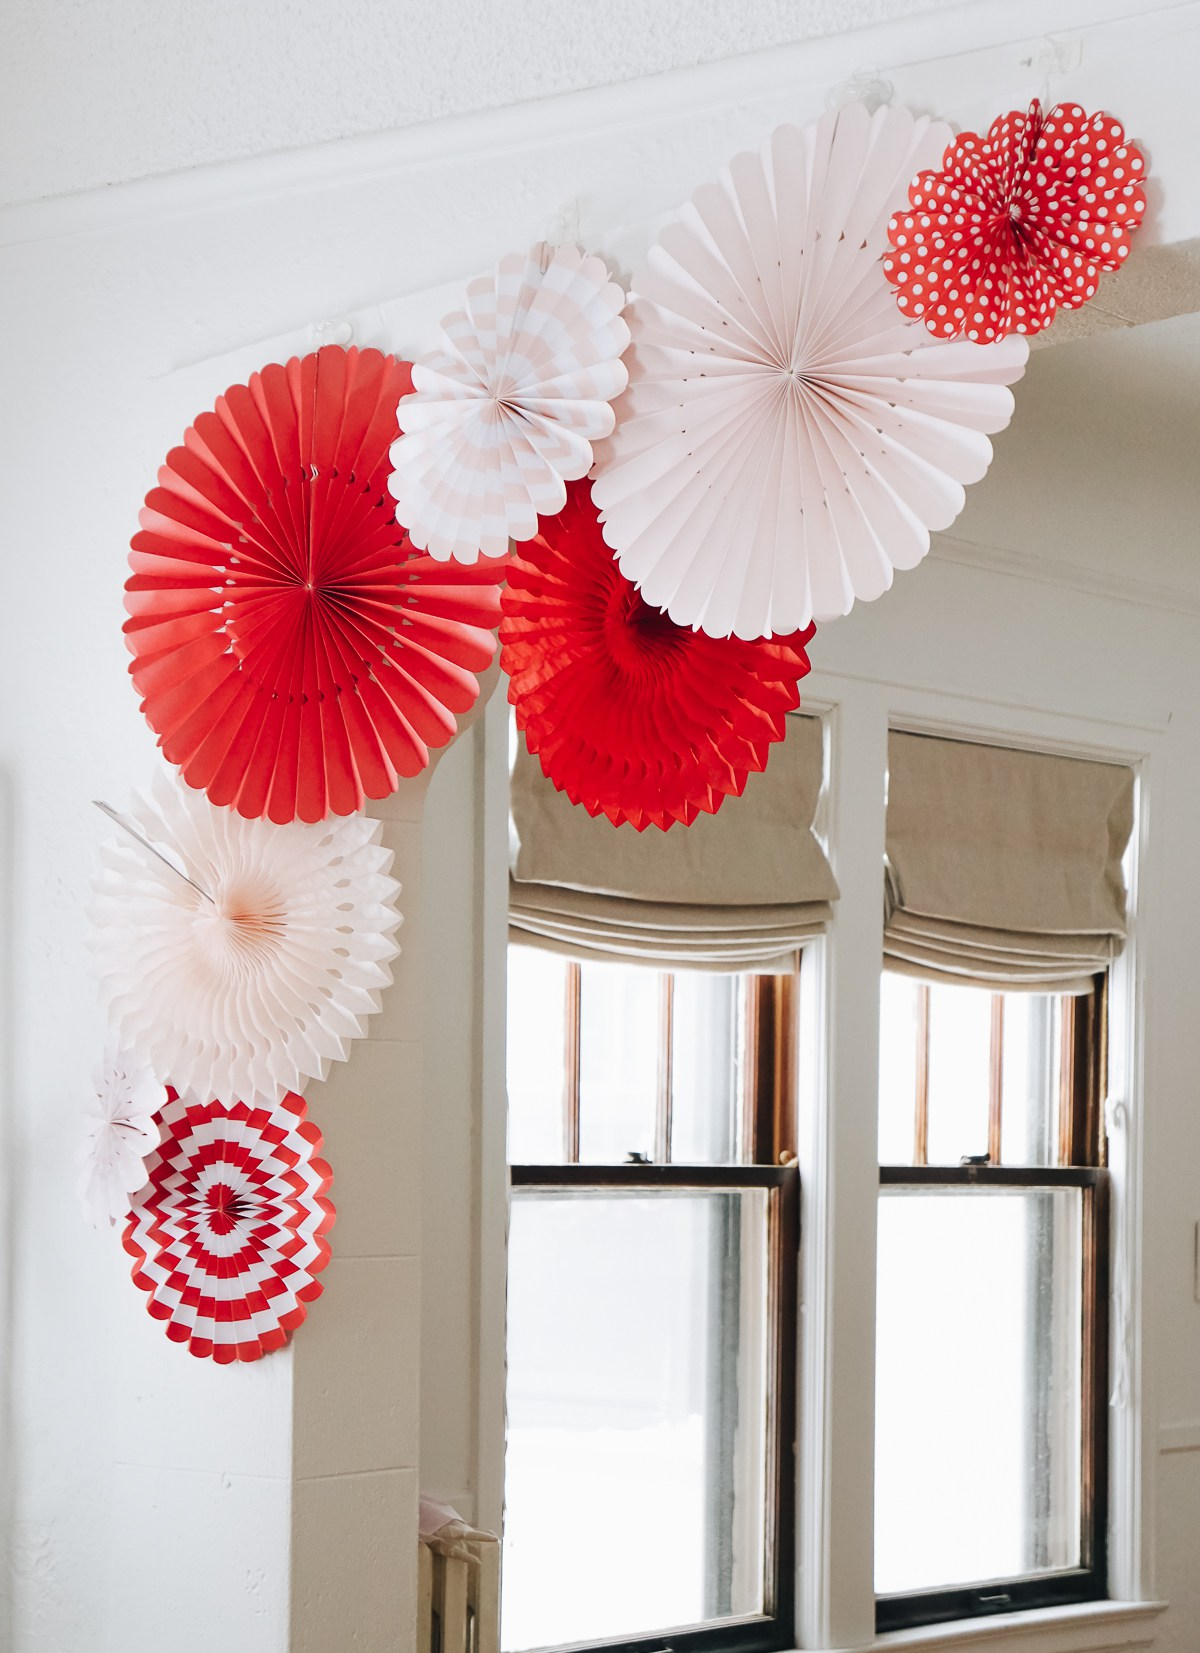 Paper party fan Valentine's Day decor